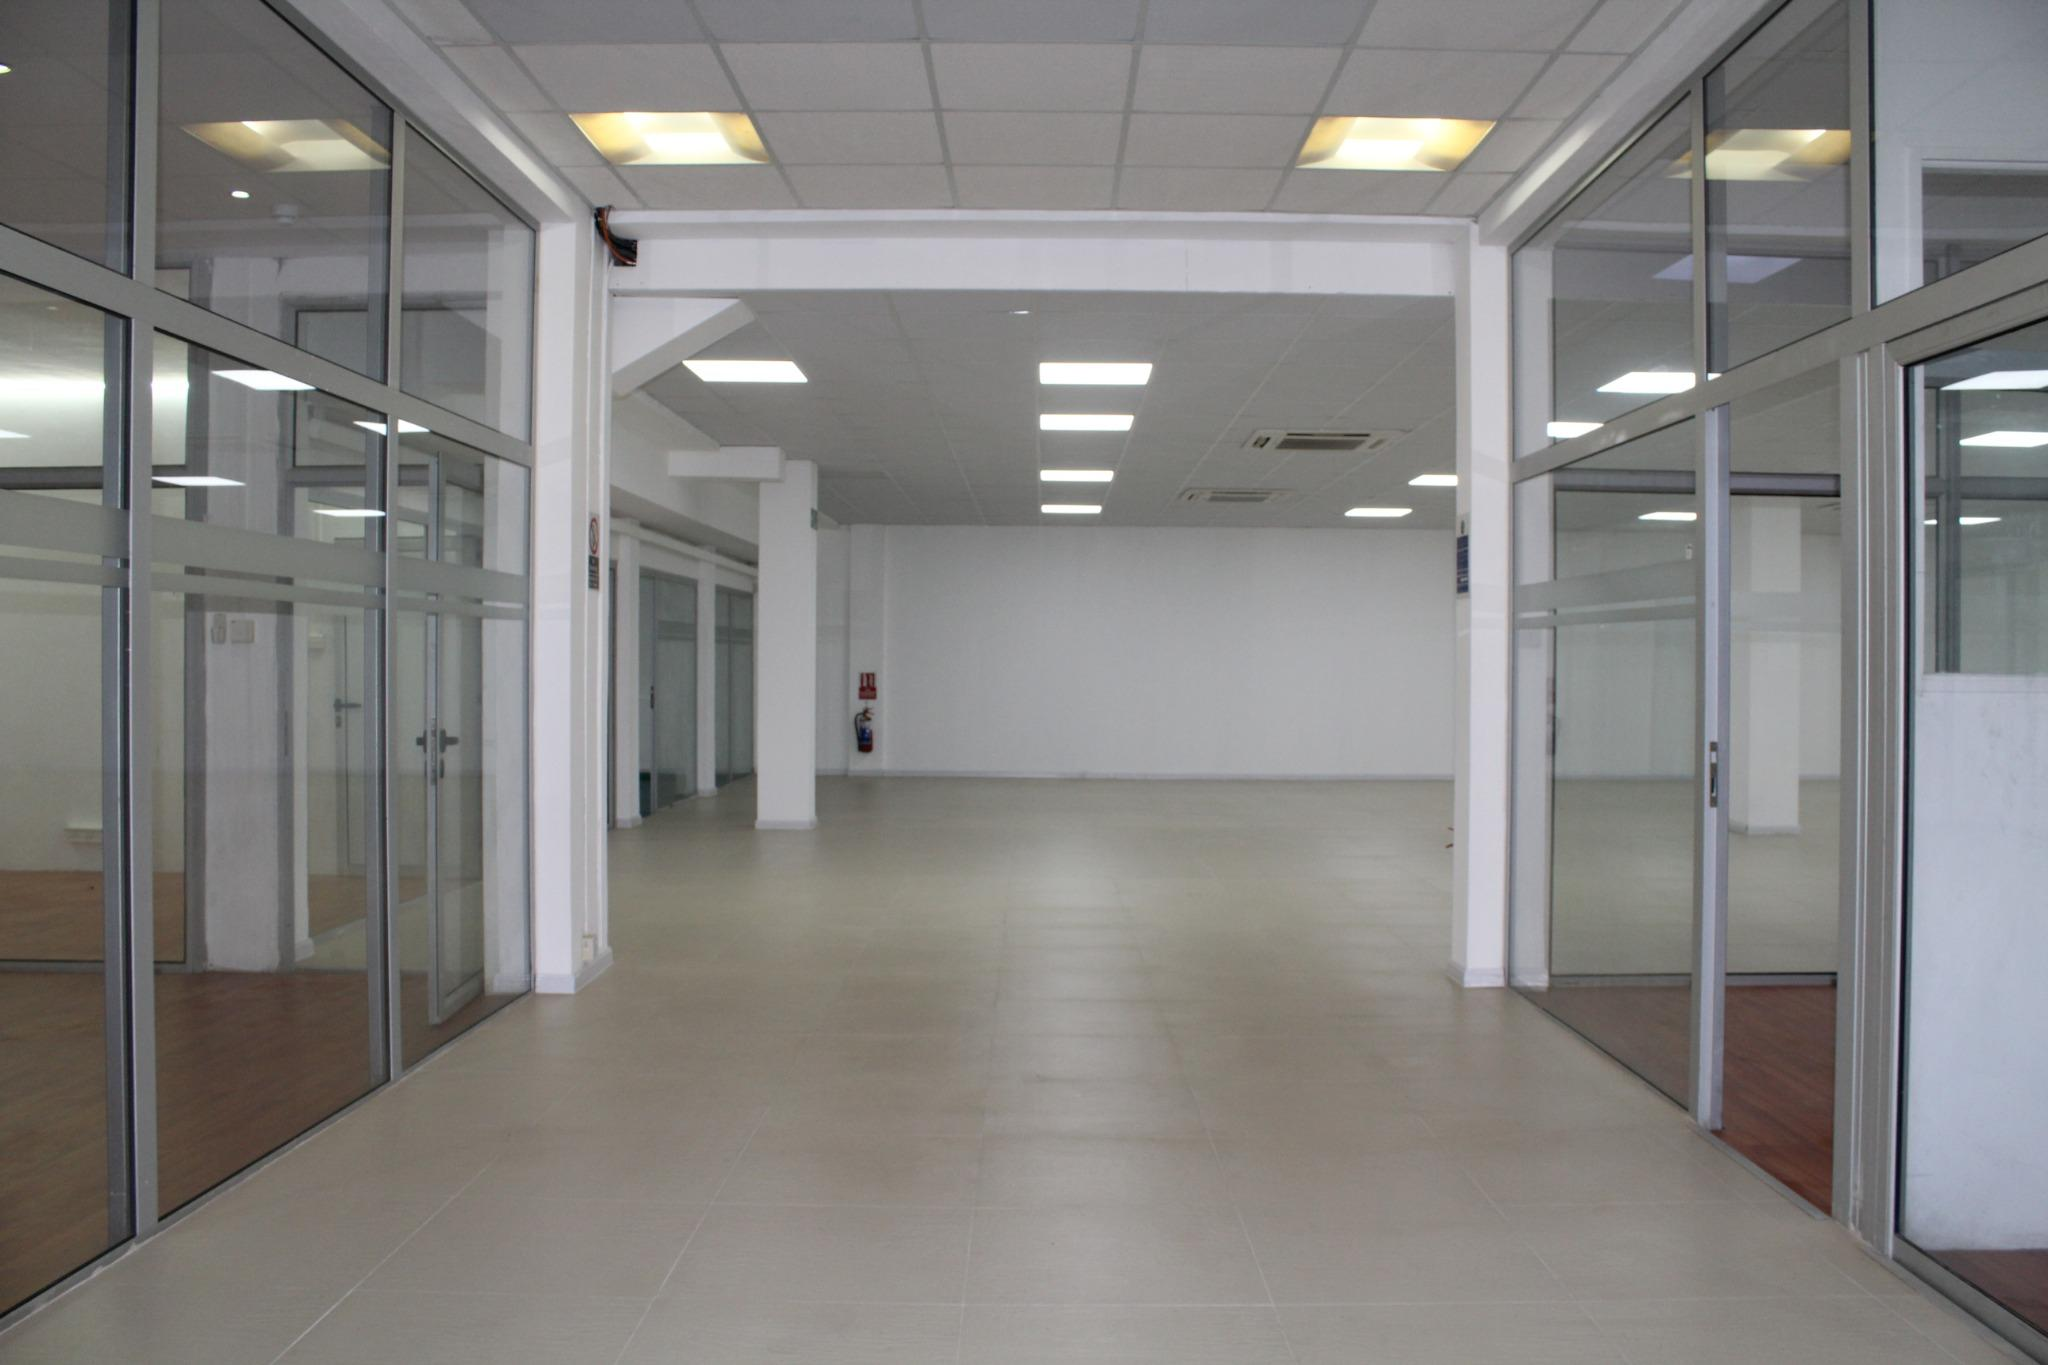 For sale – Unfurnished commercial building of 1420 m2 well located in Phoenix.